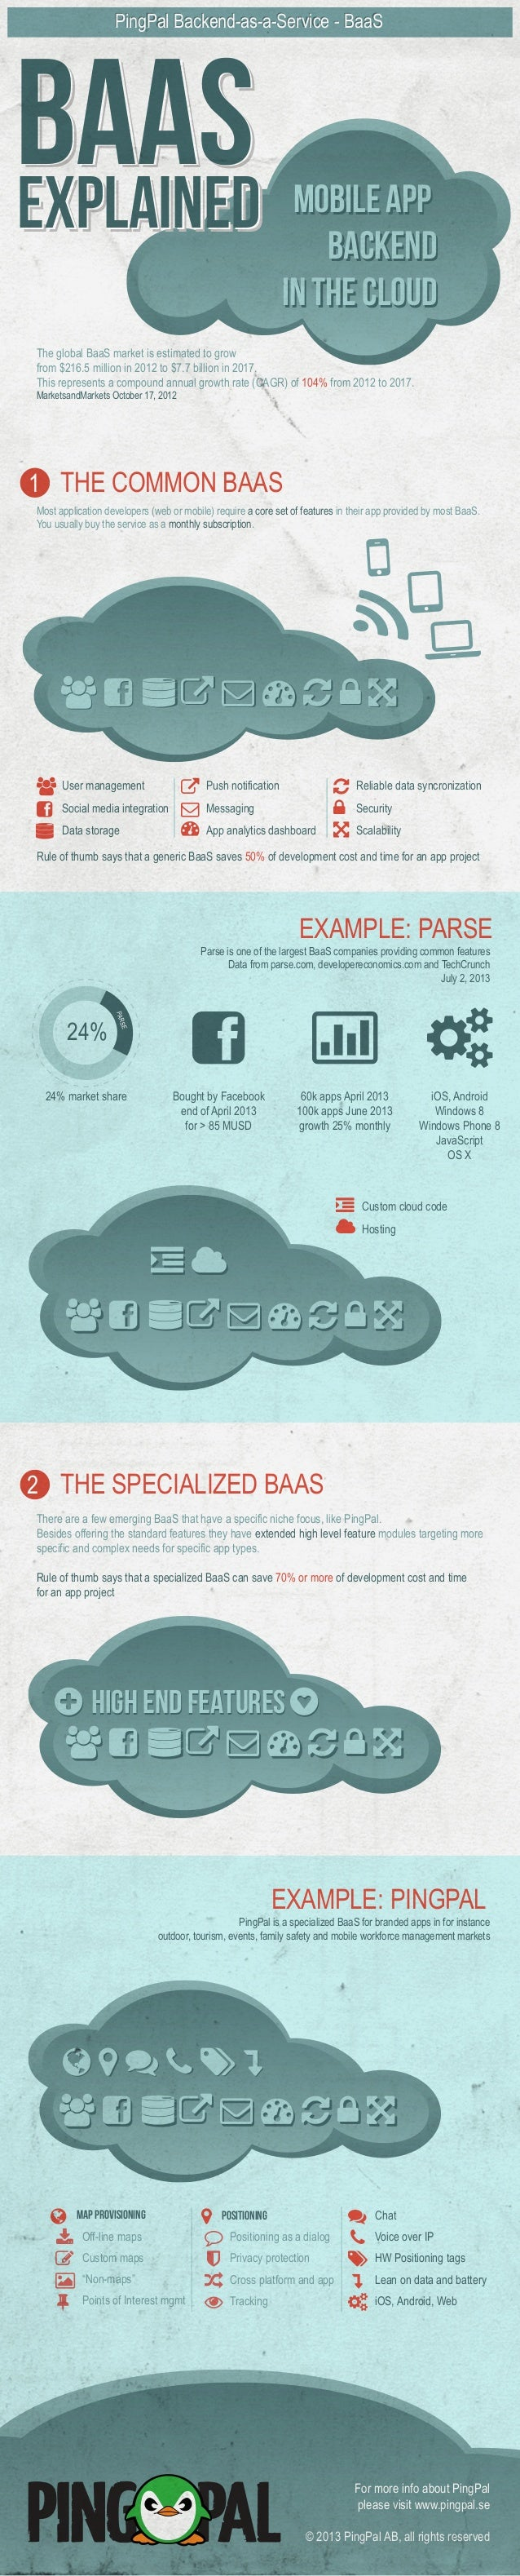  2 THE SPECIALIZED BAAS BAASBAASBAAS PingPal Backend-as-a-Service - BaaSPingPal Backend-as-a-Service - BaaS EXPLAINEDEXP...